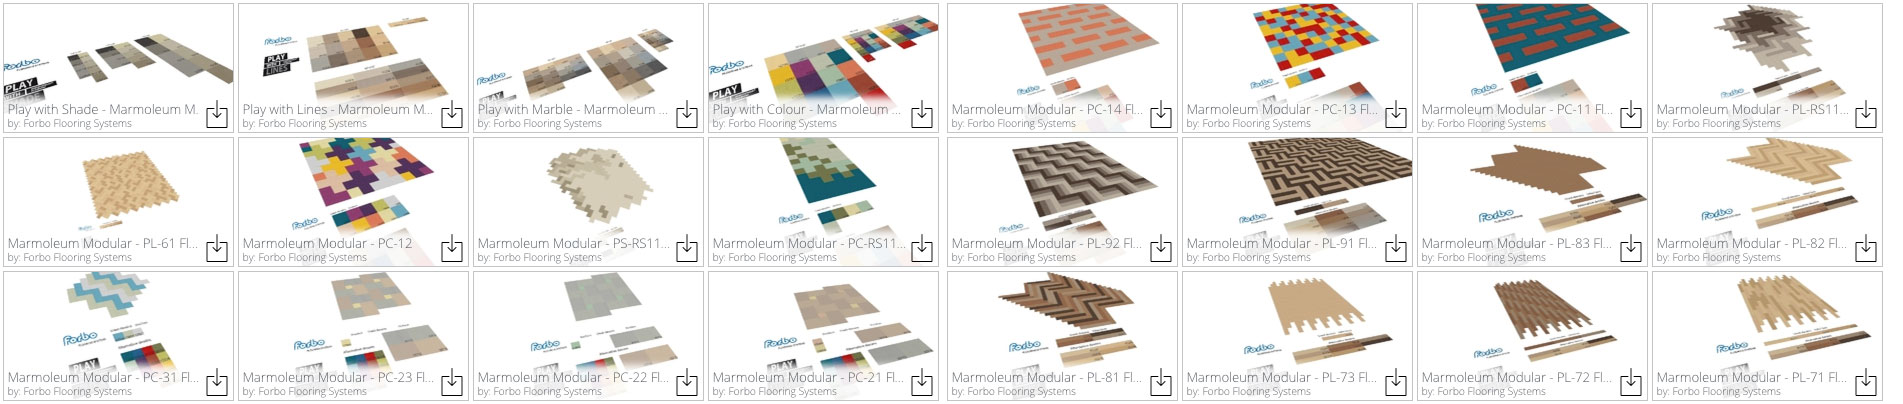 Download Marmoleum 3D Sketchup Models